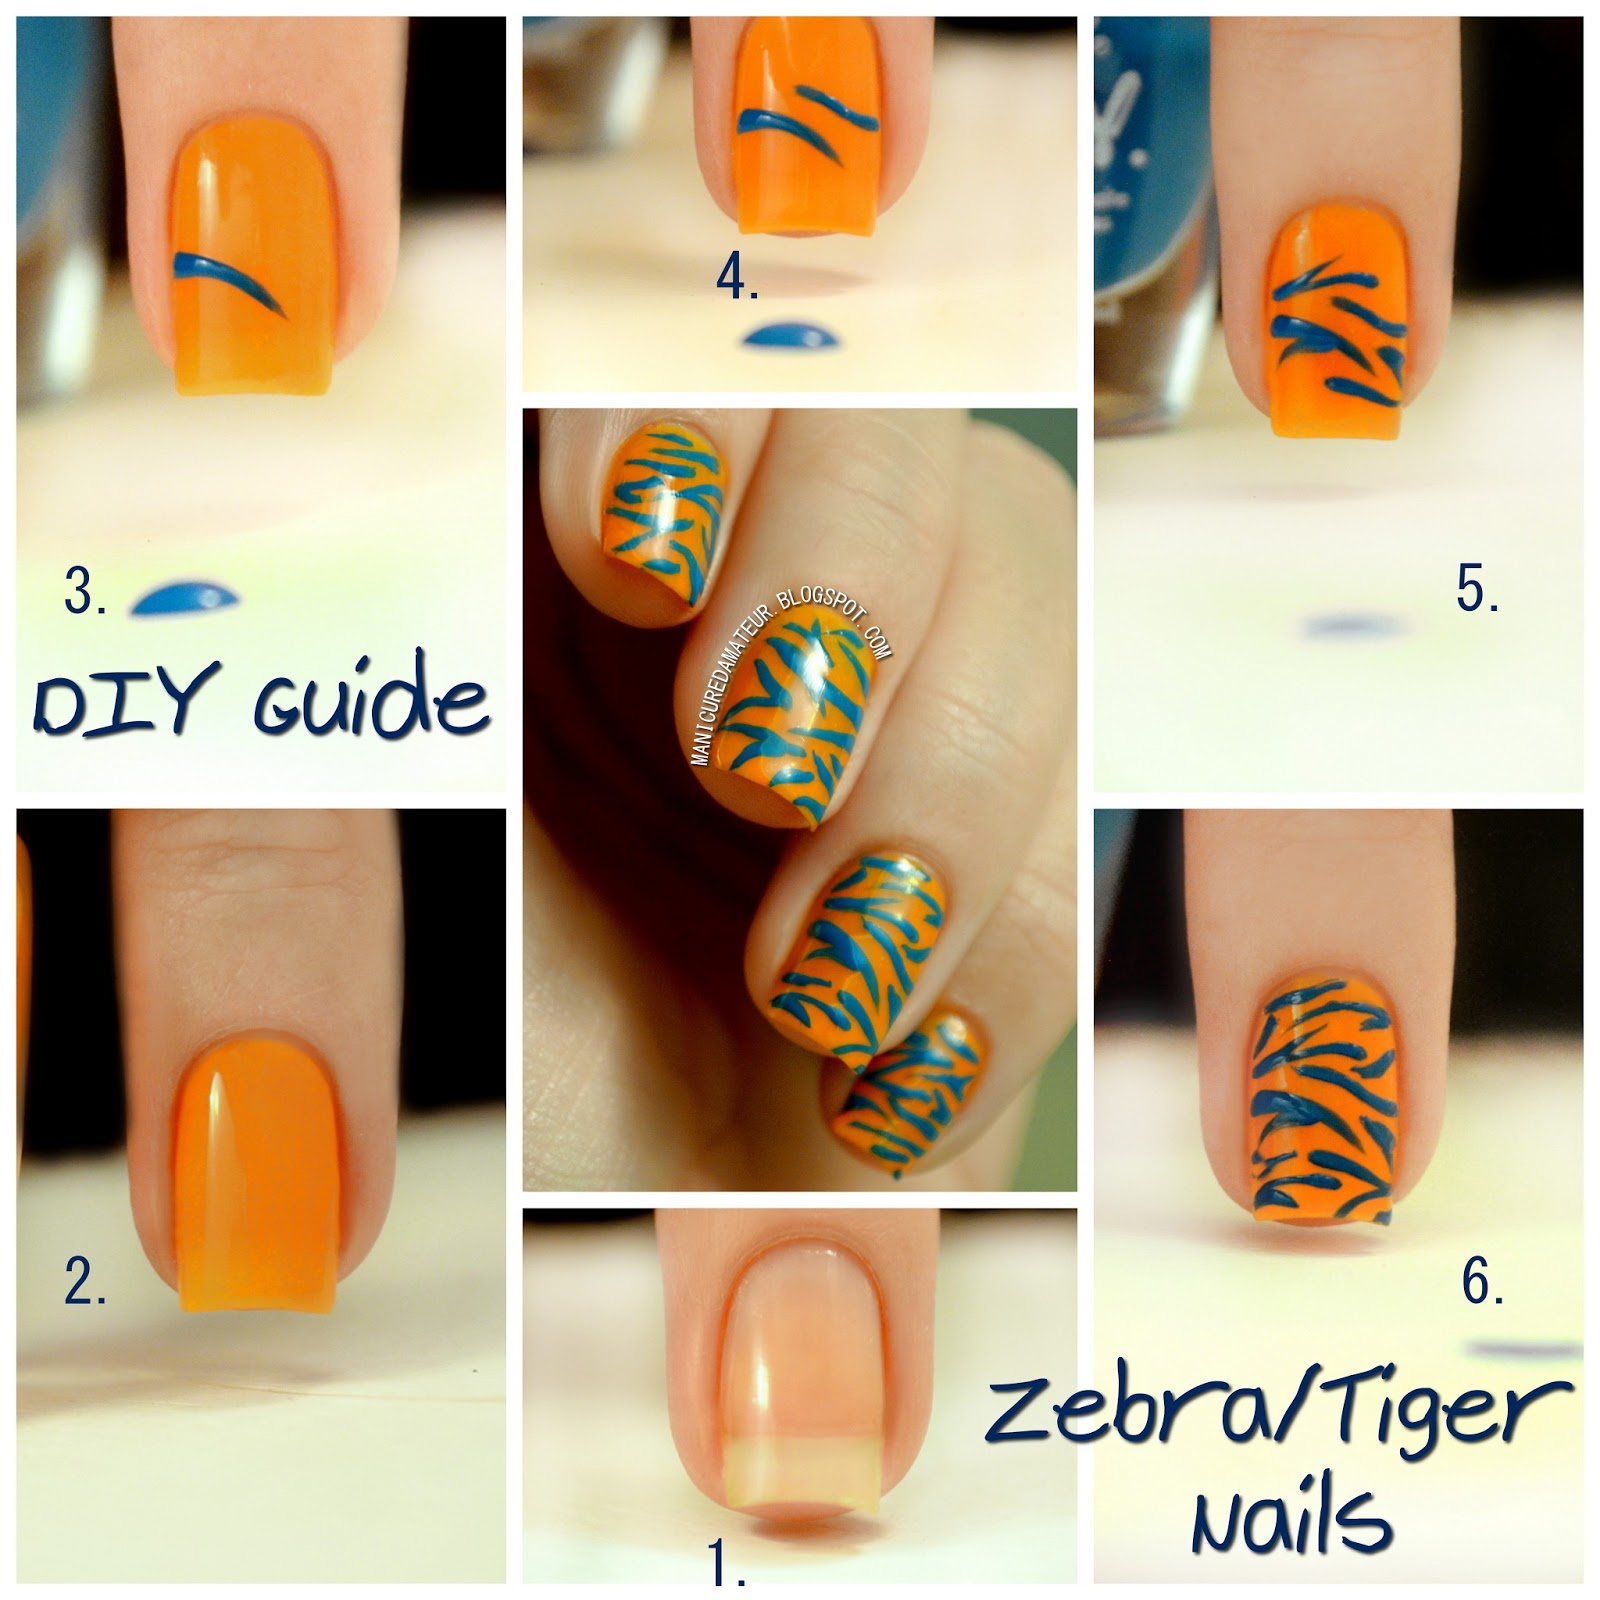 LA Girl DIY Nail Art Kit Review Part Two Tiger Zebra Stripes Tutorial